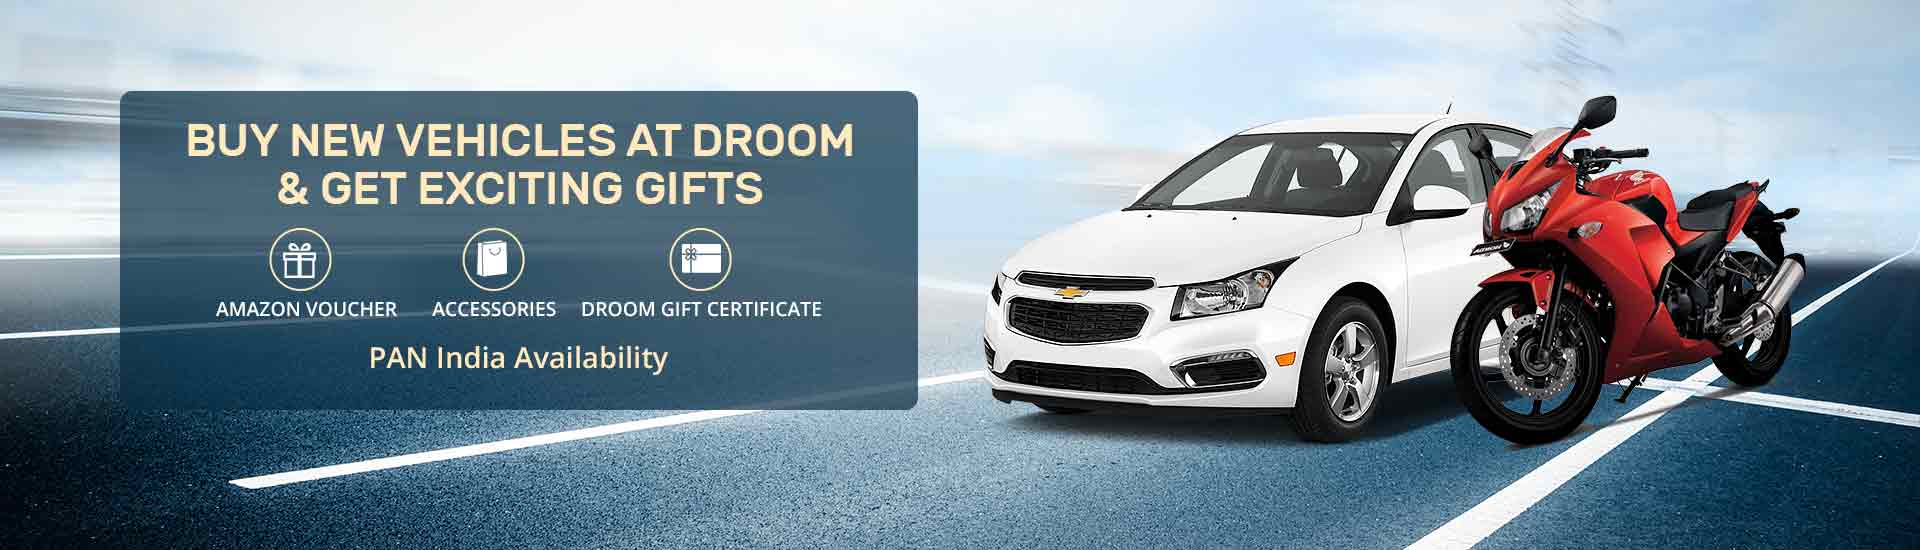 New Vehicle Offers at Droom